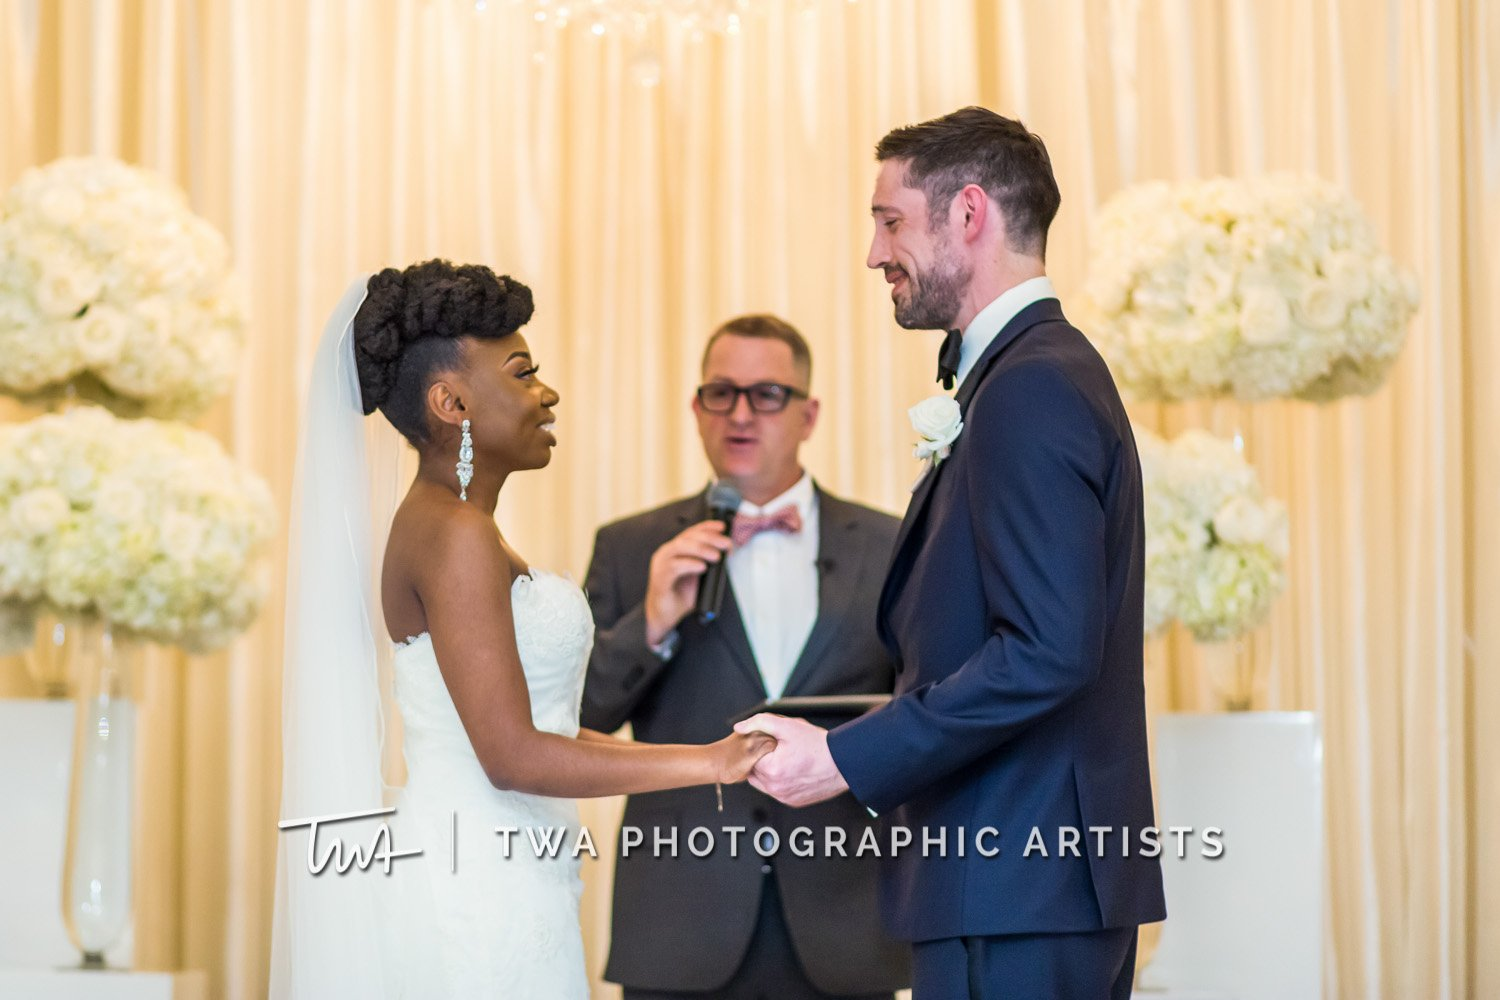 Chicago-Wedding-Photographer-TWA-Photographic-Artists-Stan-Mansion_Ityavyar_Oakley_MJ-0287-1